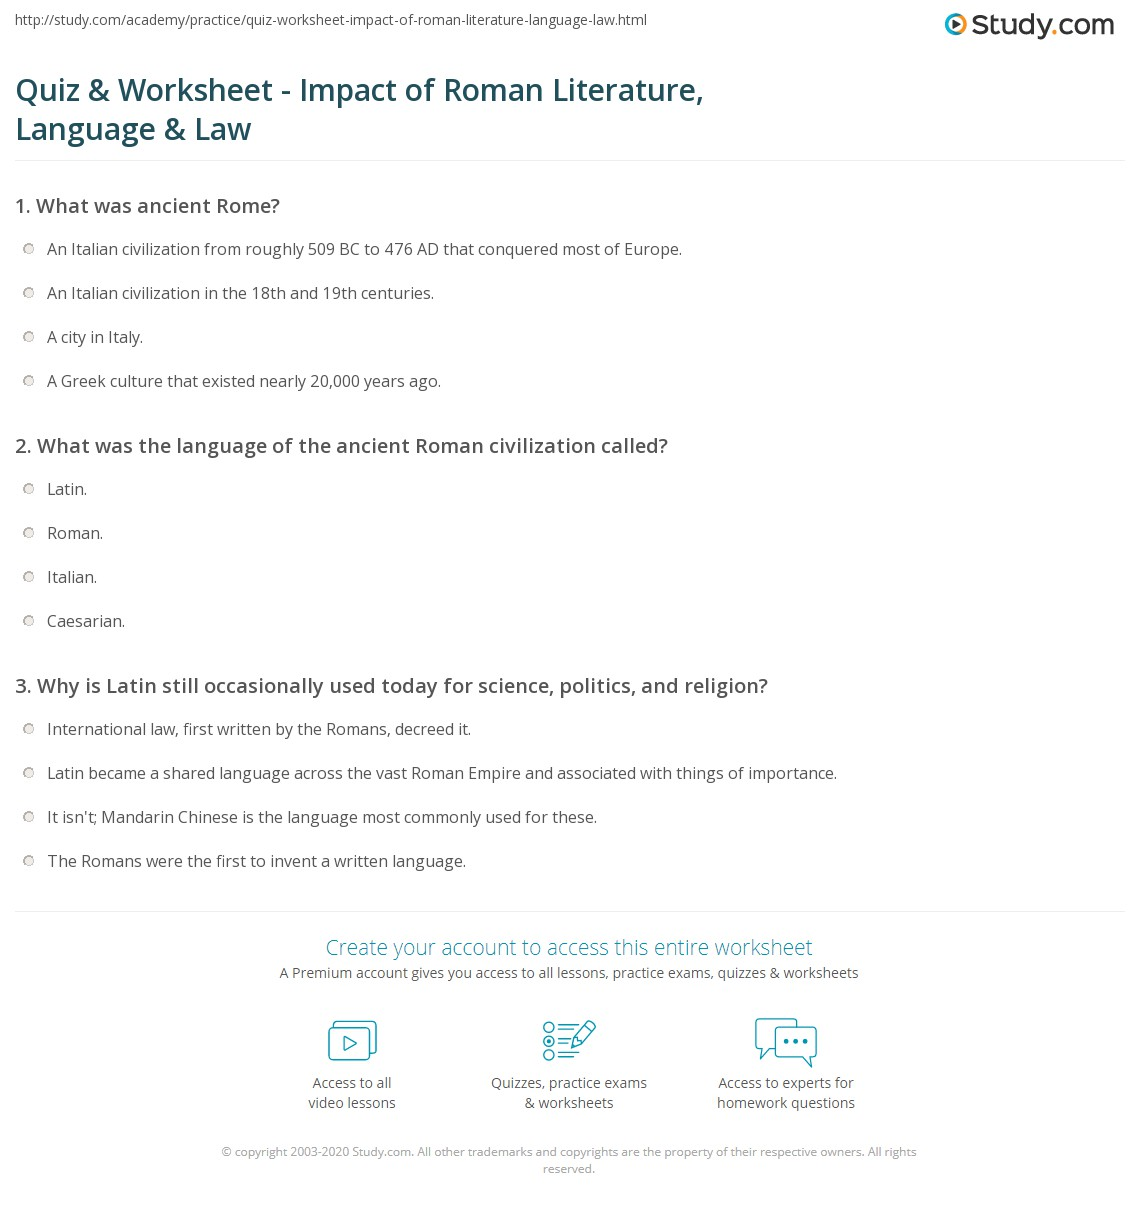 Free Worksheet Italian Language Worksheets quiz worksheet impact of roman literature language law print legacies worksheet